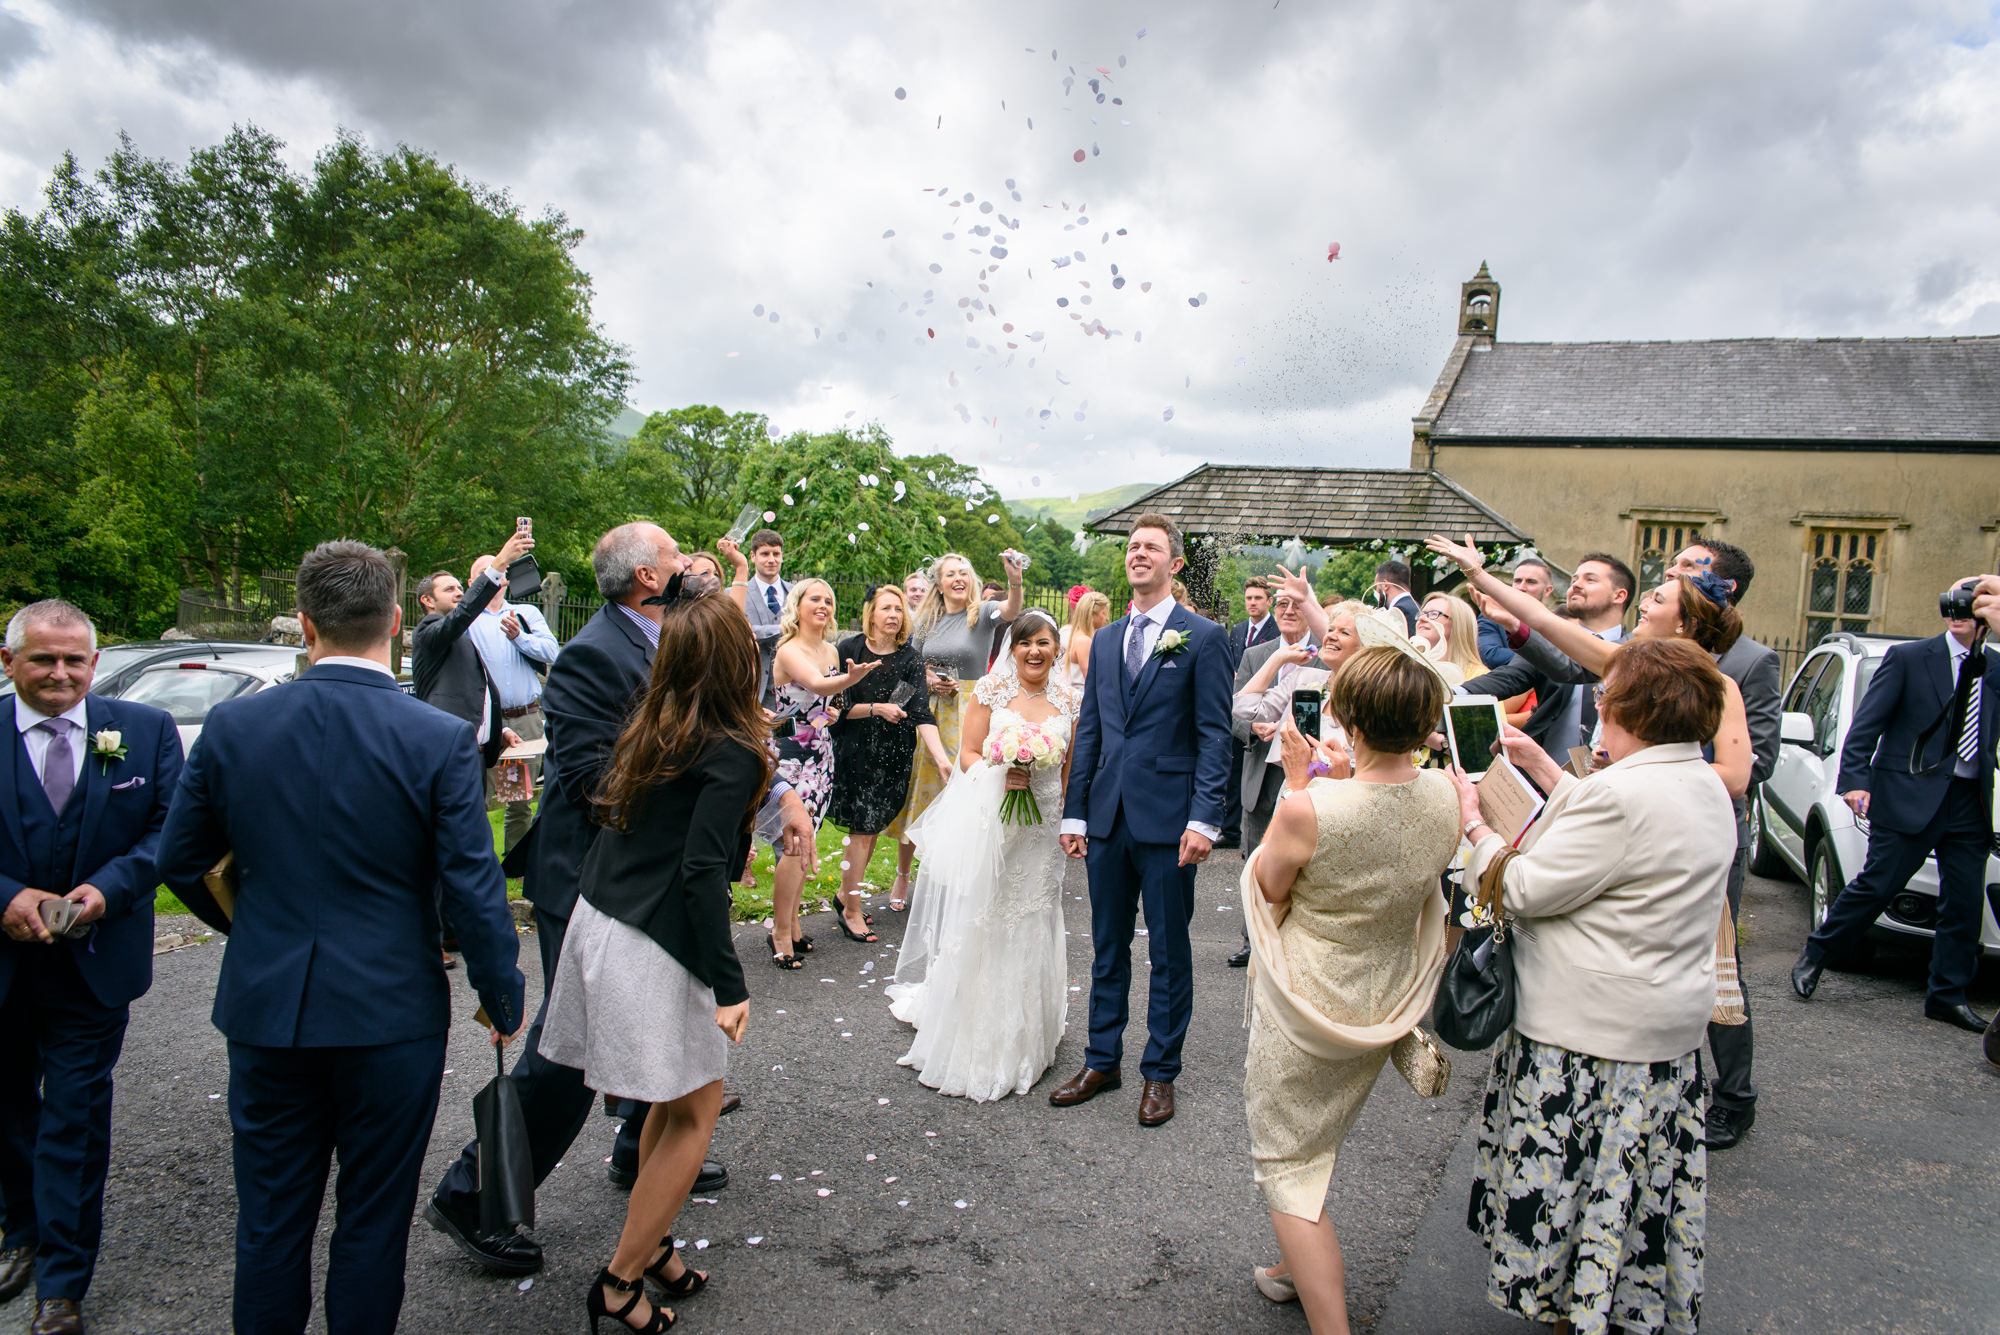 Throwing confetti outside the Parish Church of Saint Michael Whitewell